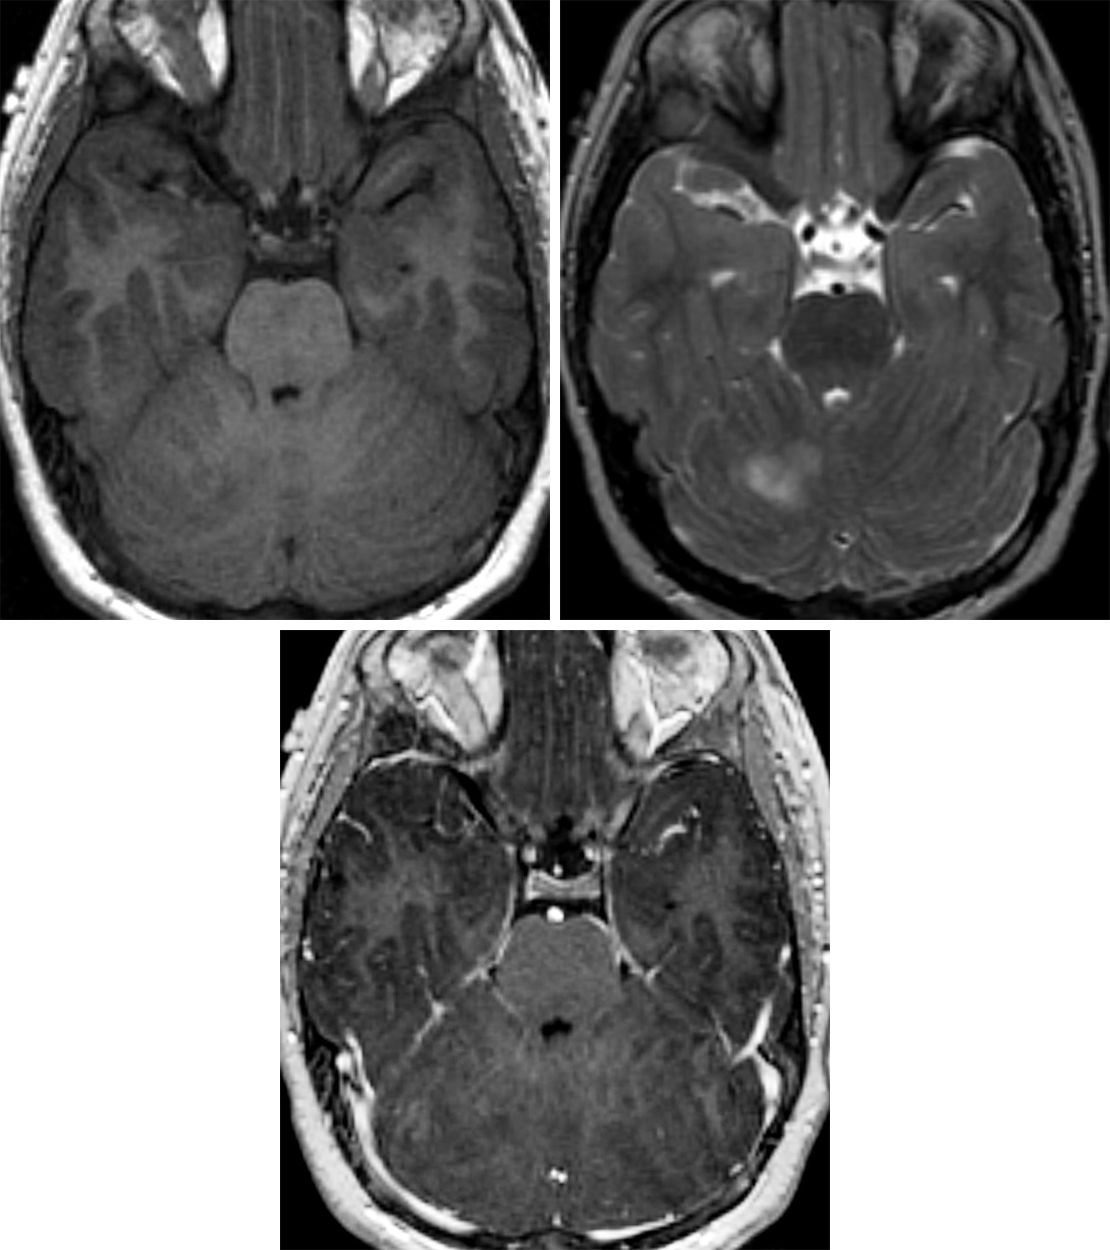 Figure 1: (Top Left) A disorganized appearance to the cerebellum is typical in this dysplastic cerebellar gangliocytoma, barely visible on T1WI. (Top Right) These lesions are often associated with variable degrees of T2 hyperintensity and enhancement. (Bottom) This patient's lesion demonstrated no enhancement on T1WI postcontrast imaging.